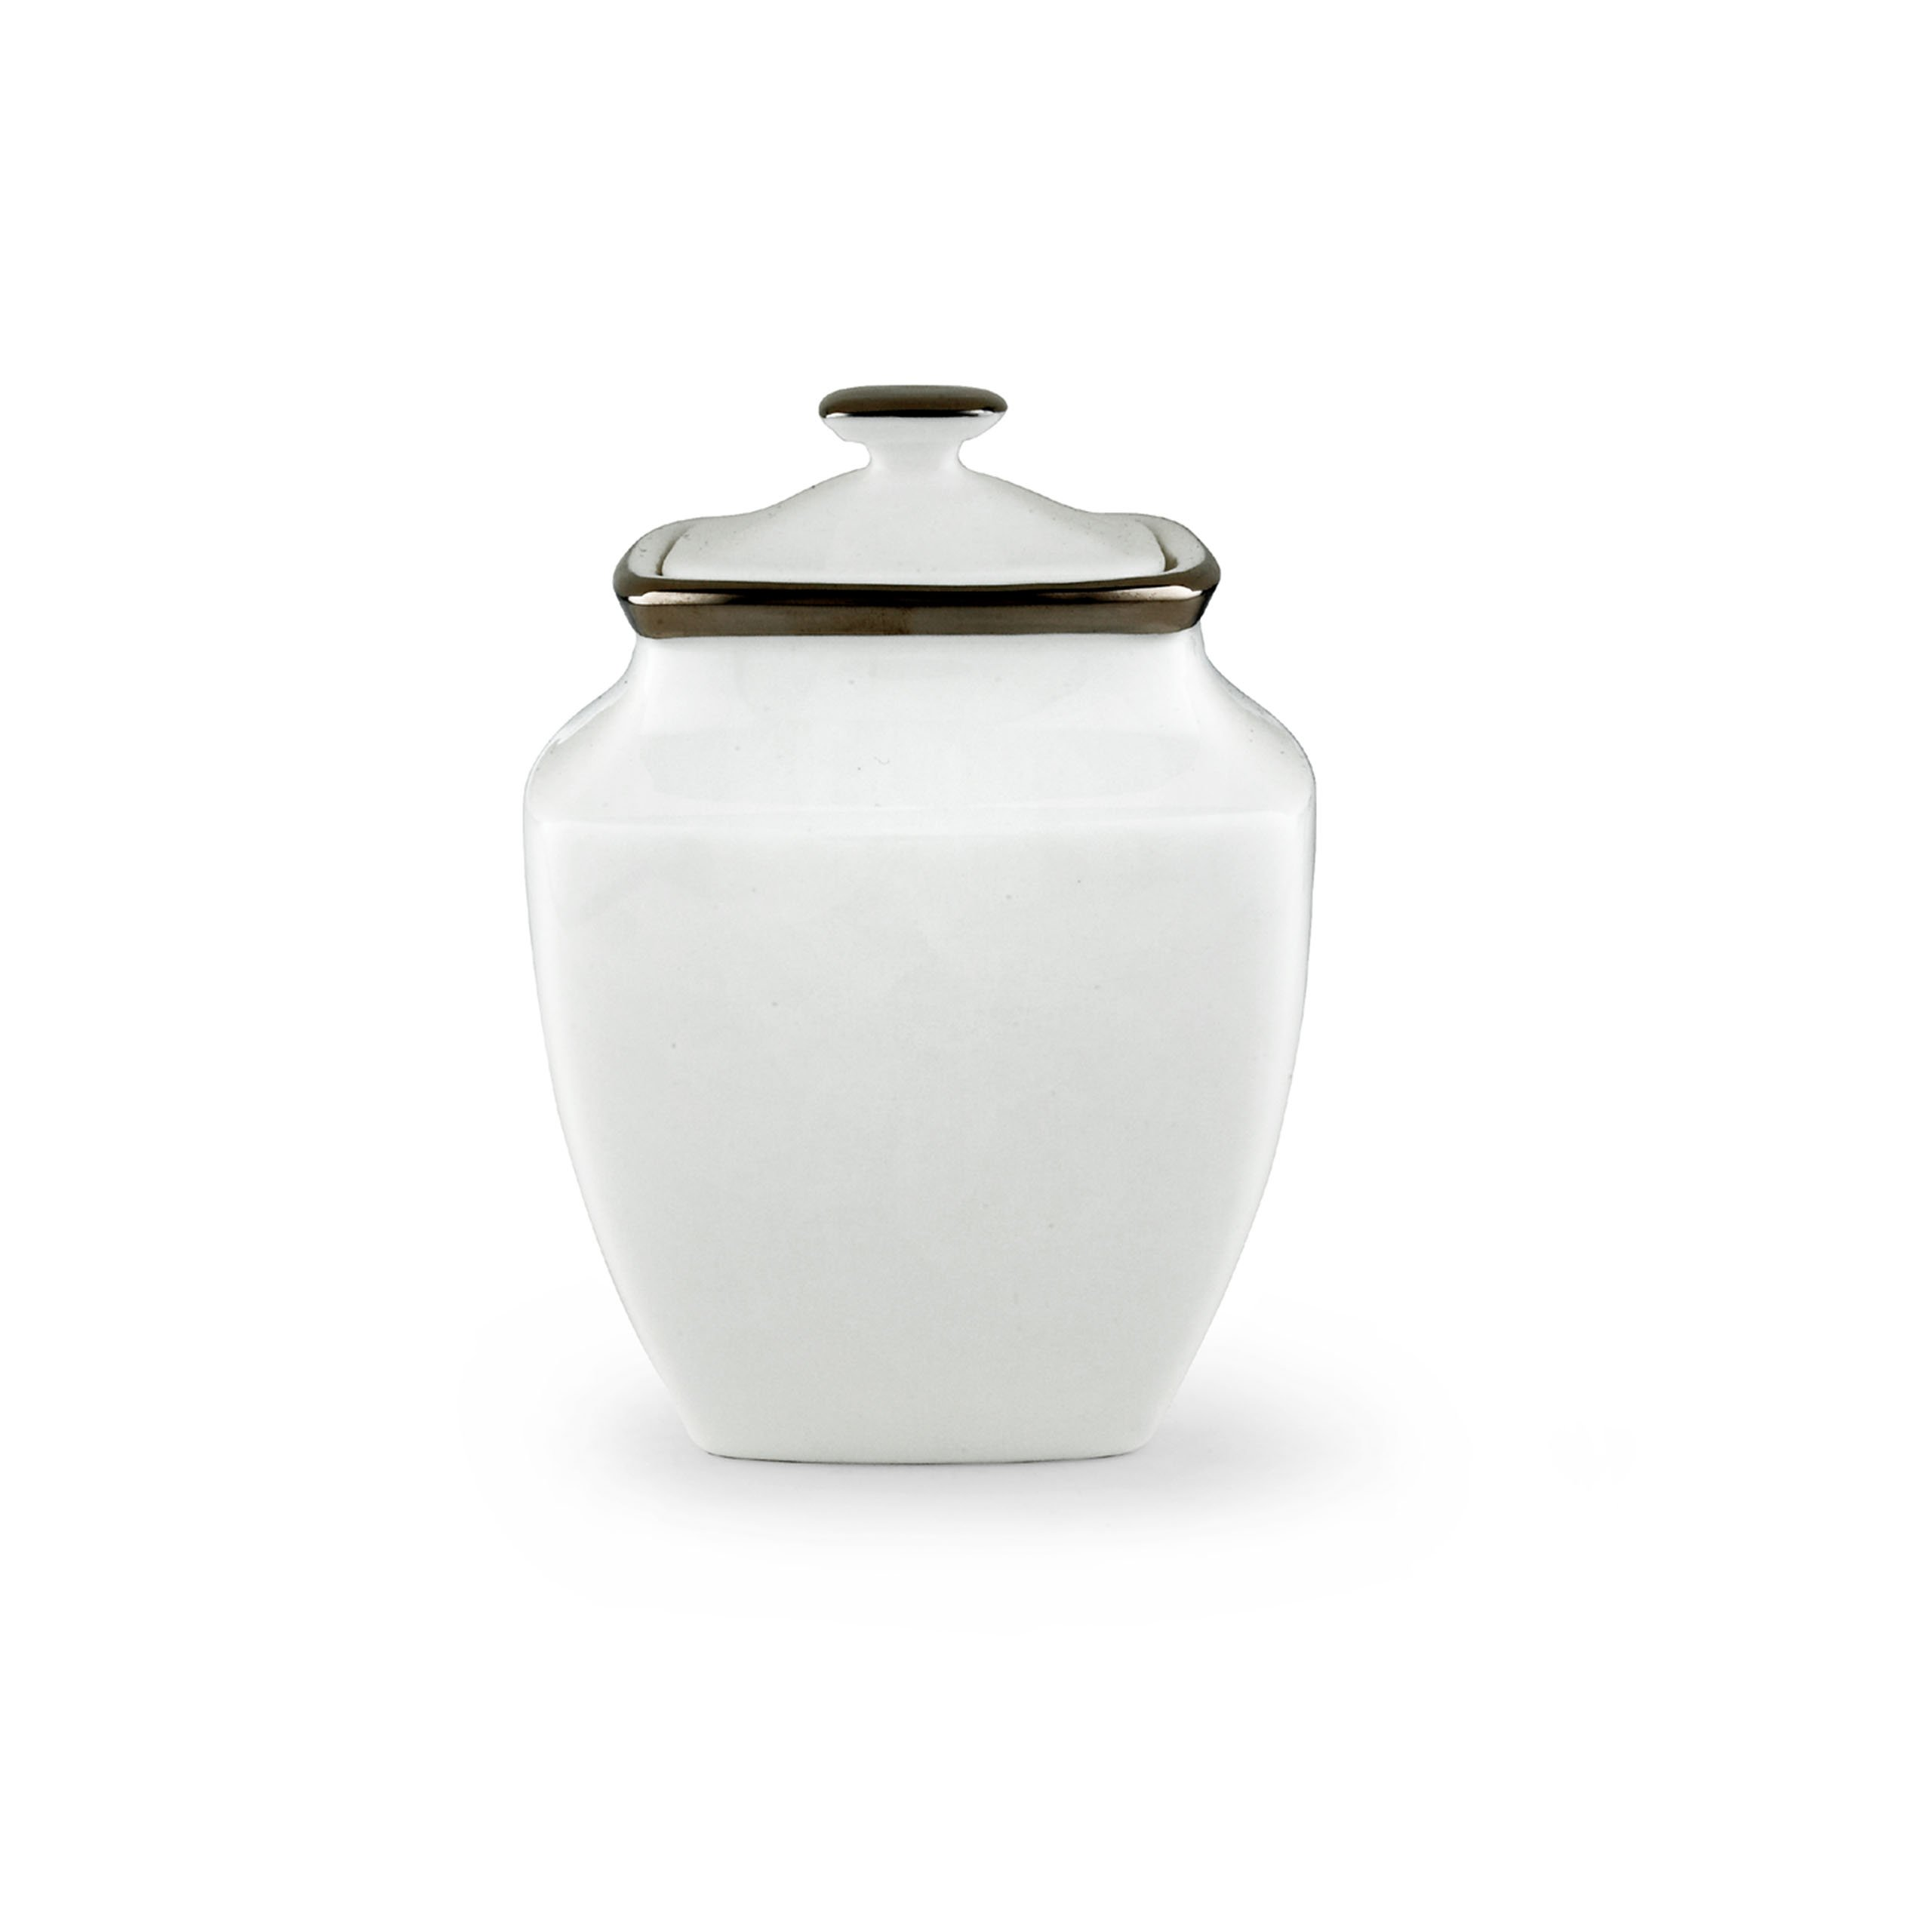 Lenox Solitaire White Square Sugar Bowl with Lid